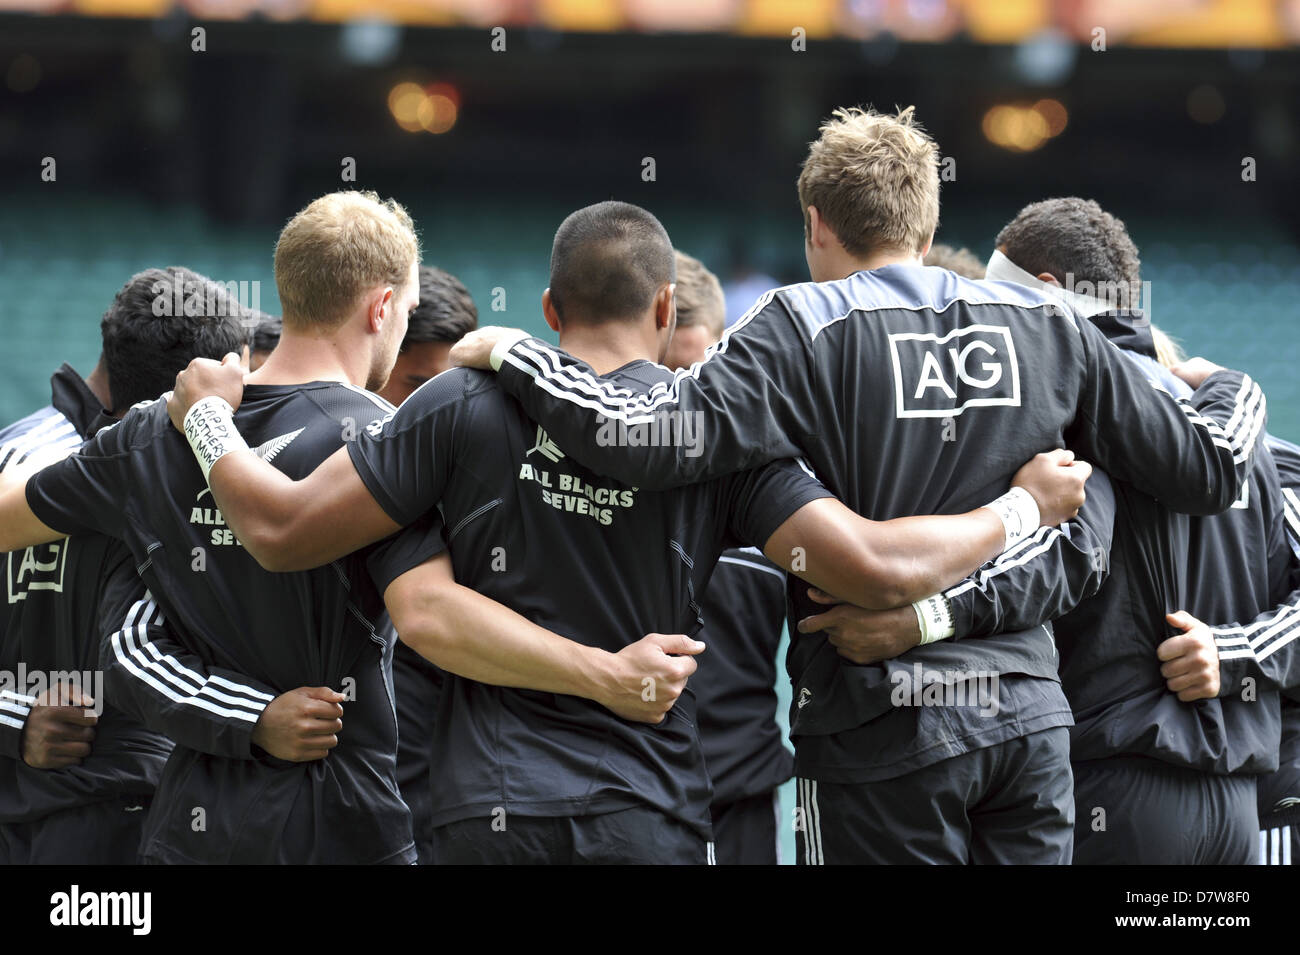 Members of the New Zealand All Blacks Sevens in a team huddle prior to playing in the quarter final of the HSBC - Stock Image